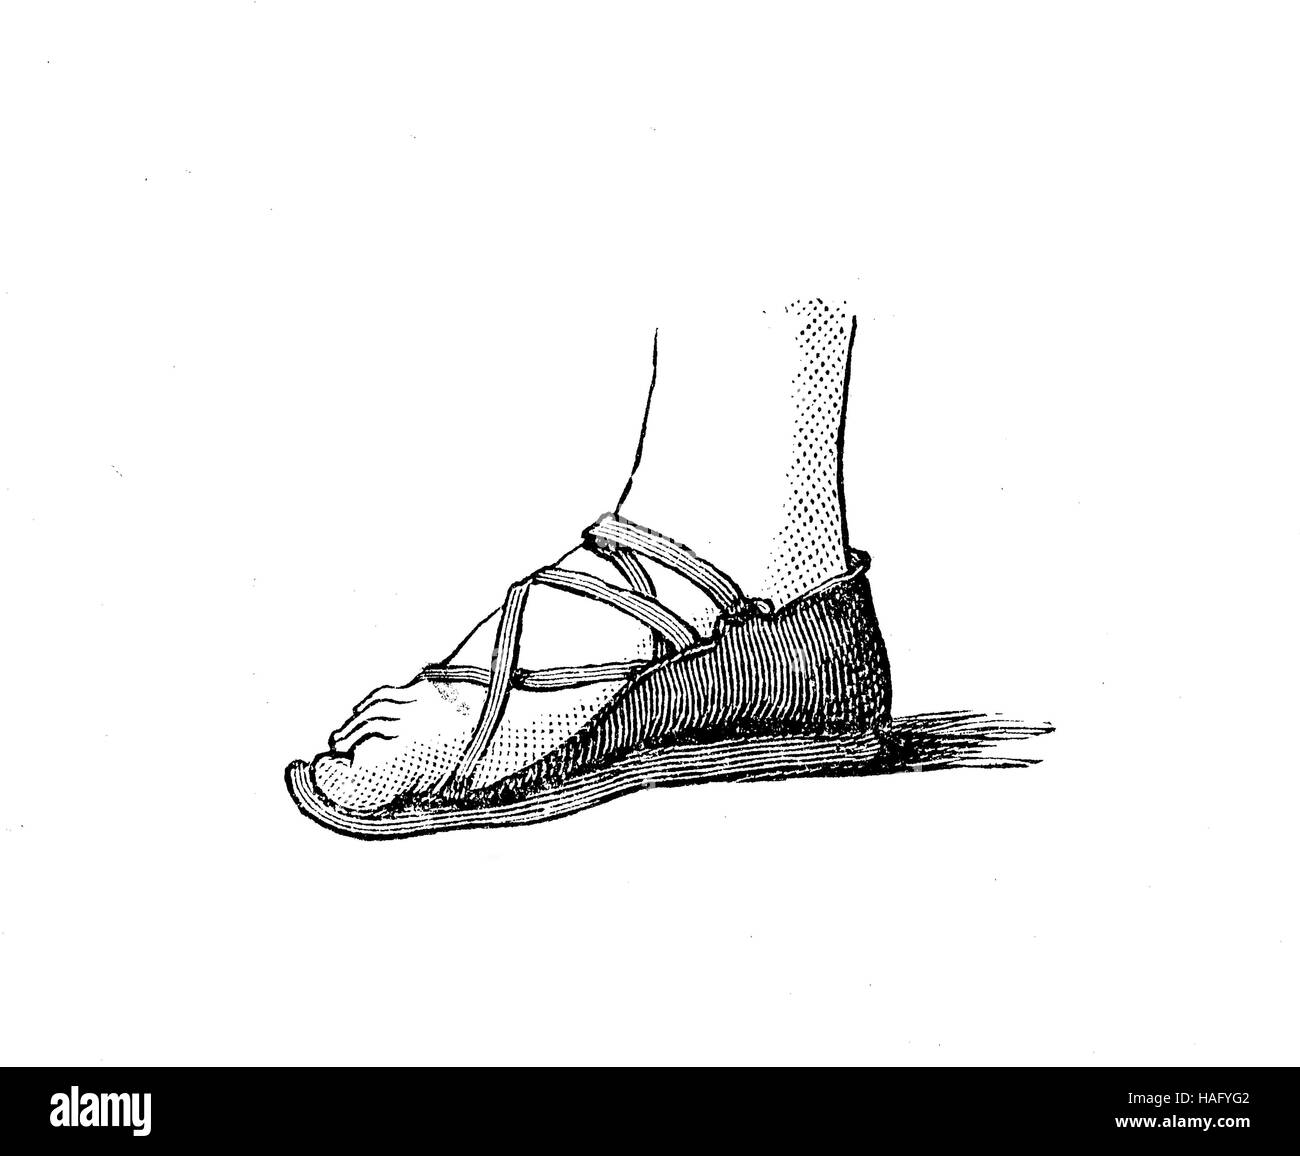 shoe fashion of the past, an Assyrian shoe, 25. century BC, woodcut from the year 1880 - Stock Image